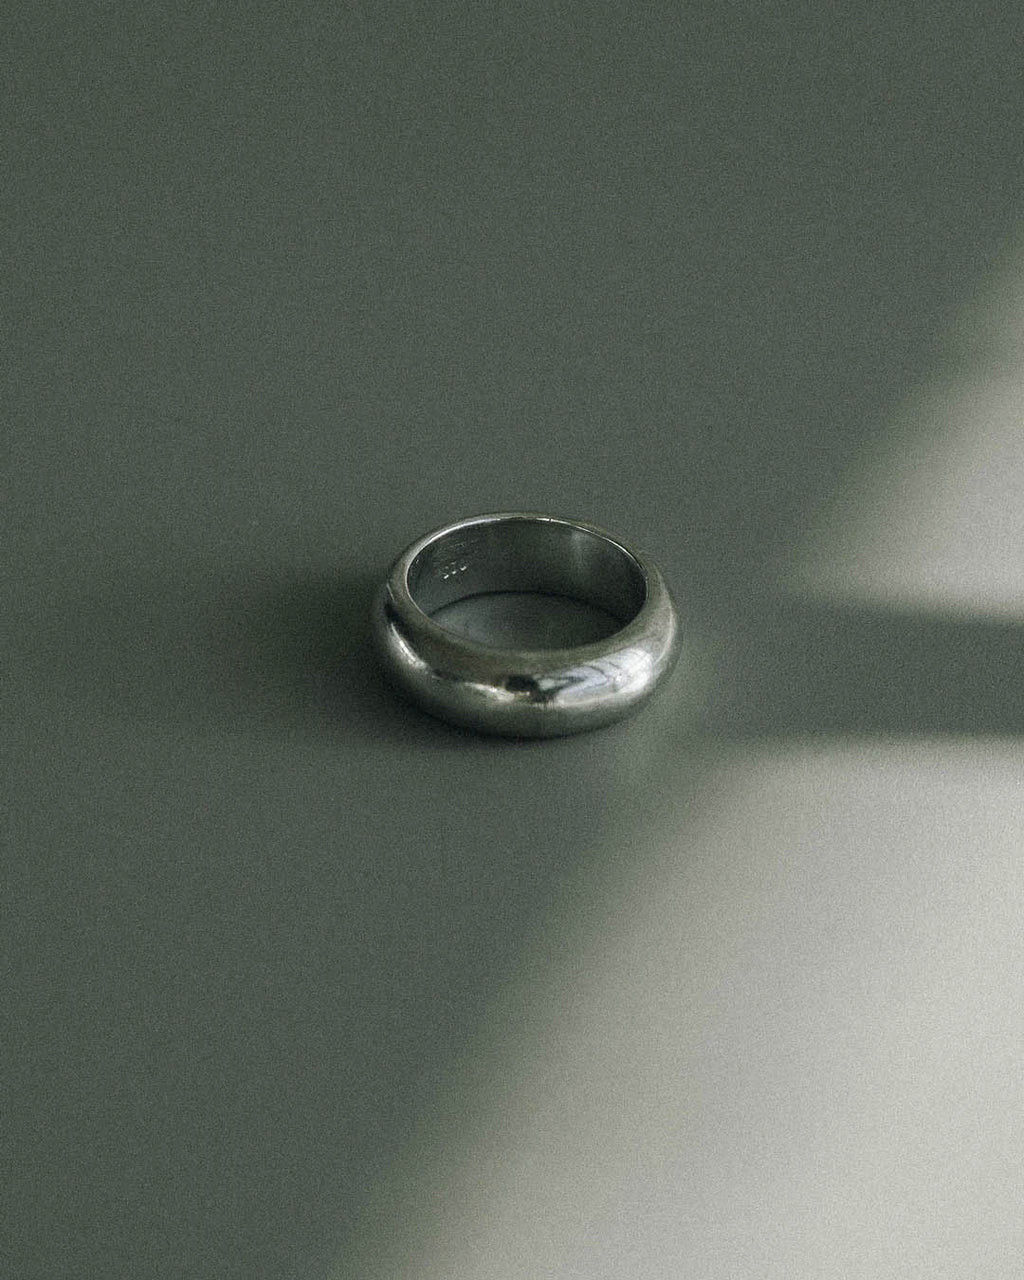 simple minimalist sterling silver ring made in toronto canada